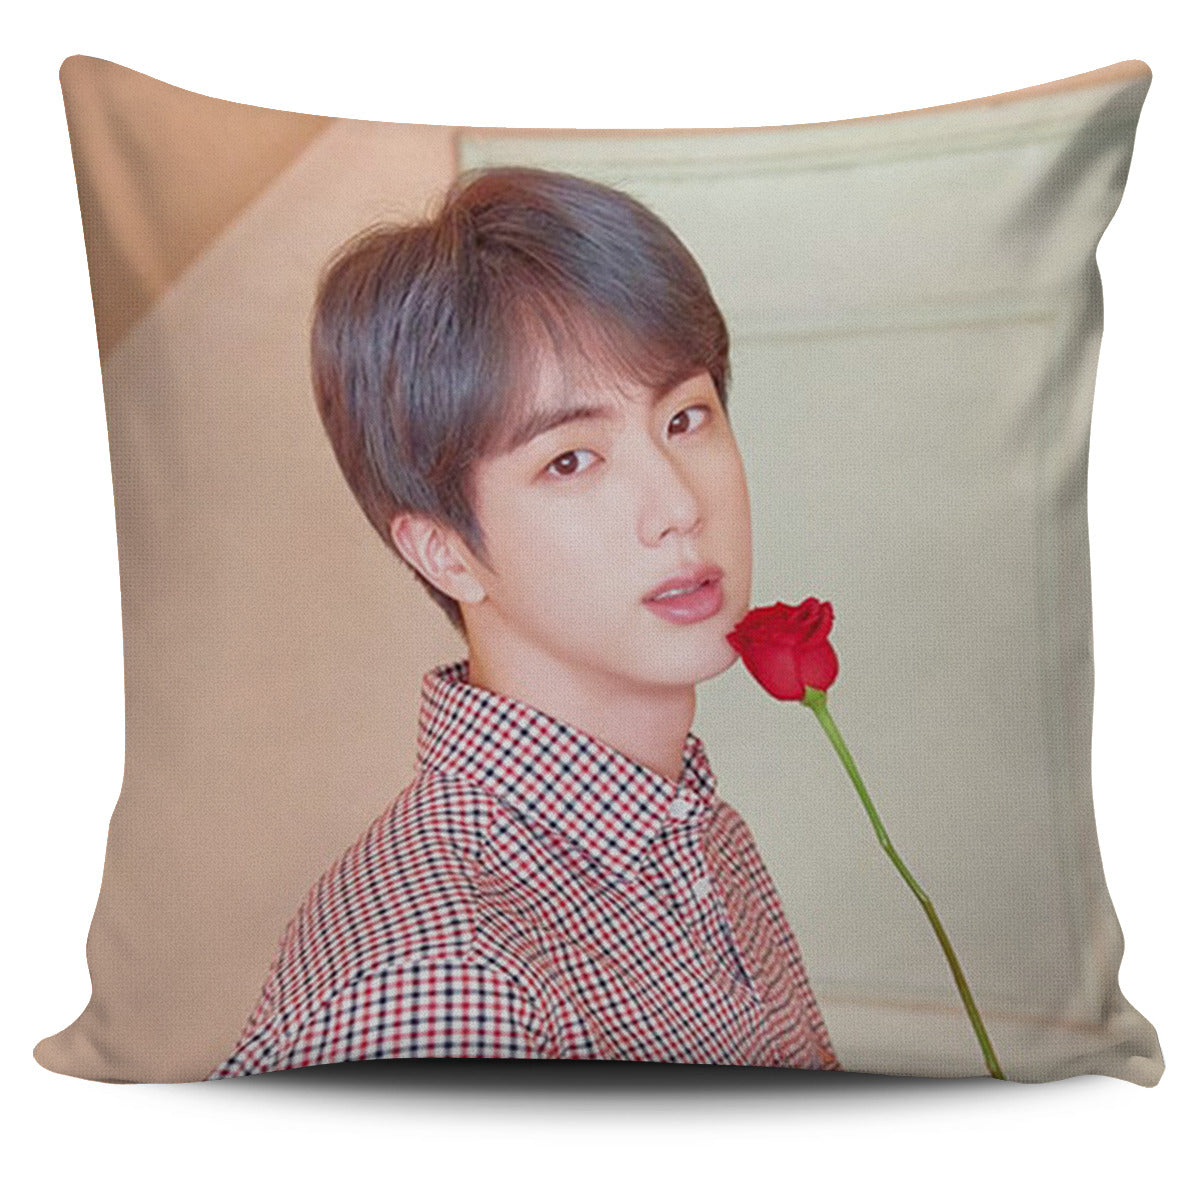 FREE Jin Pillow Cover